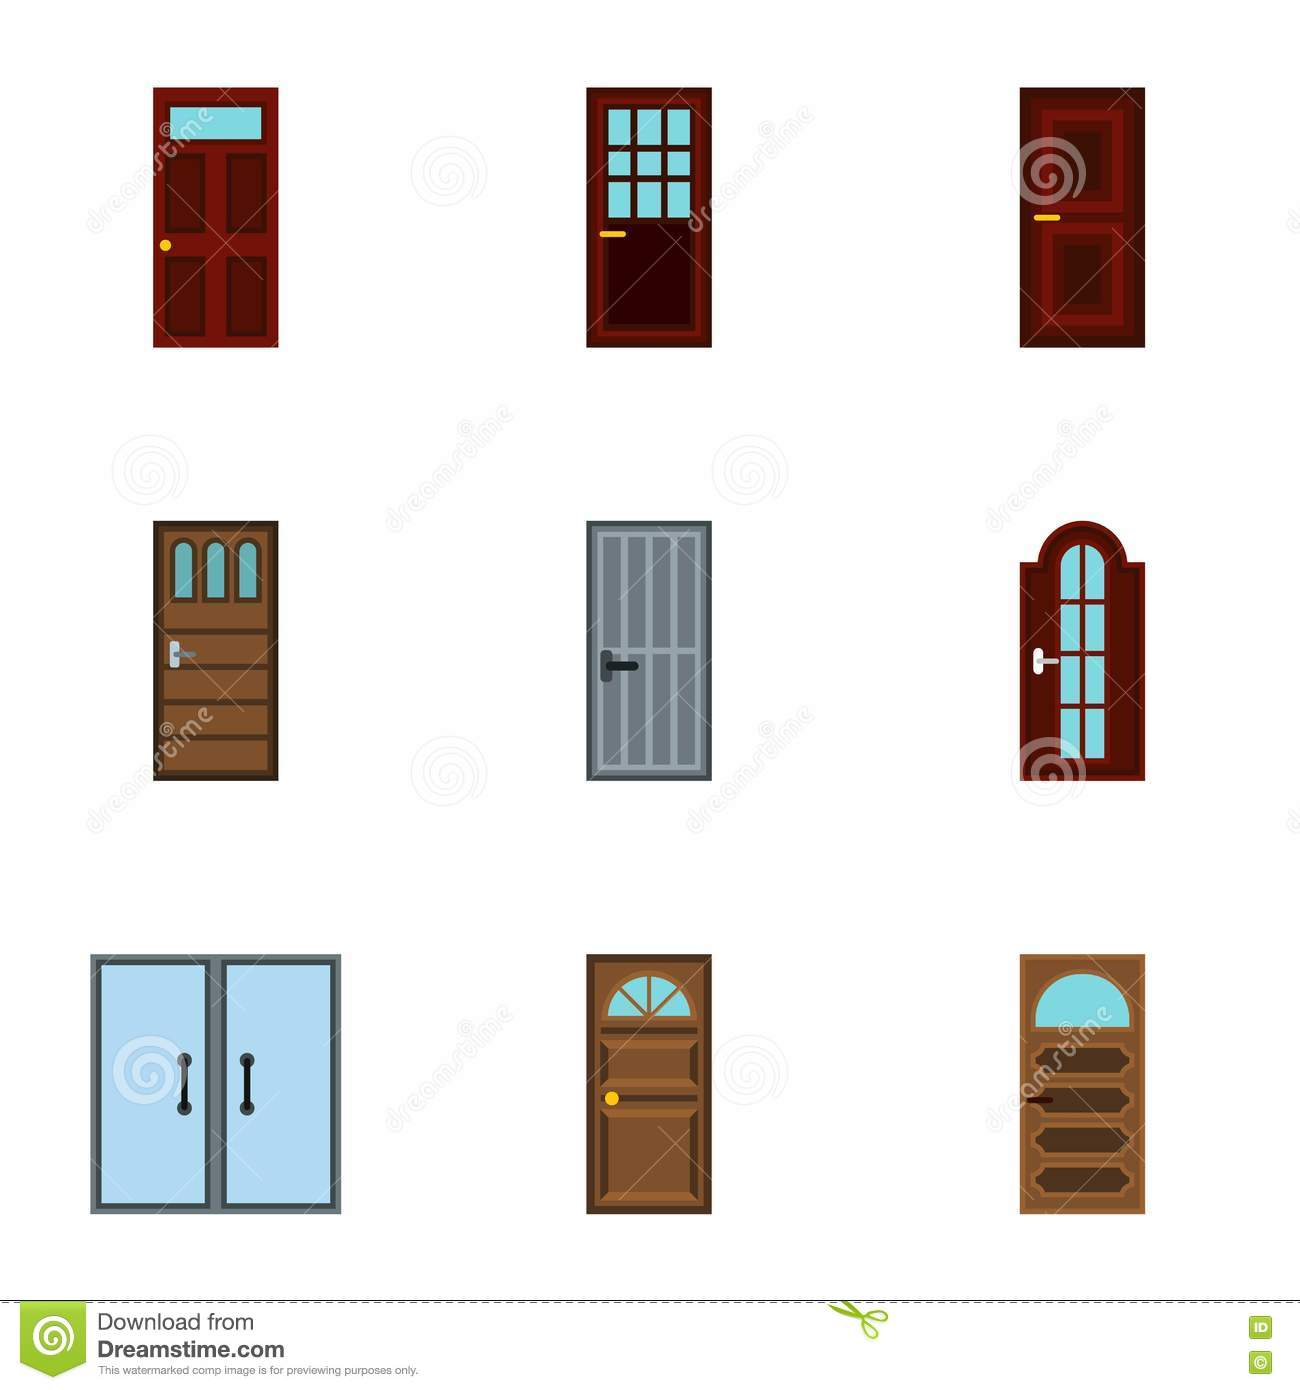 Types Of Doors Icons Set, Flat Style Stock Vector - Image: 80646057